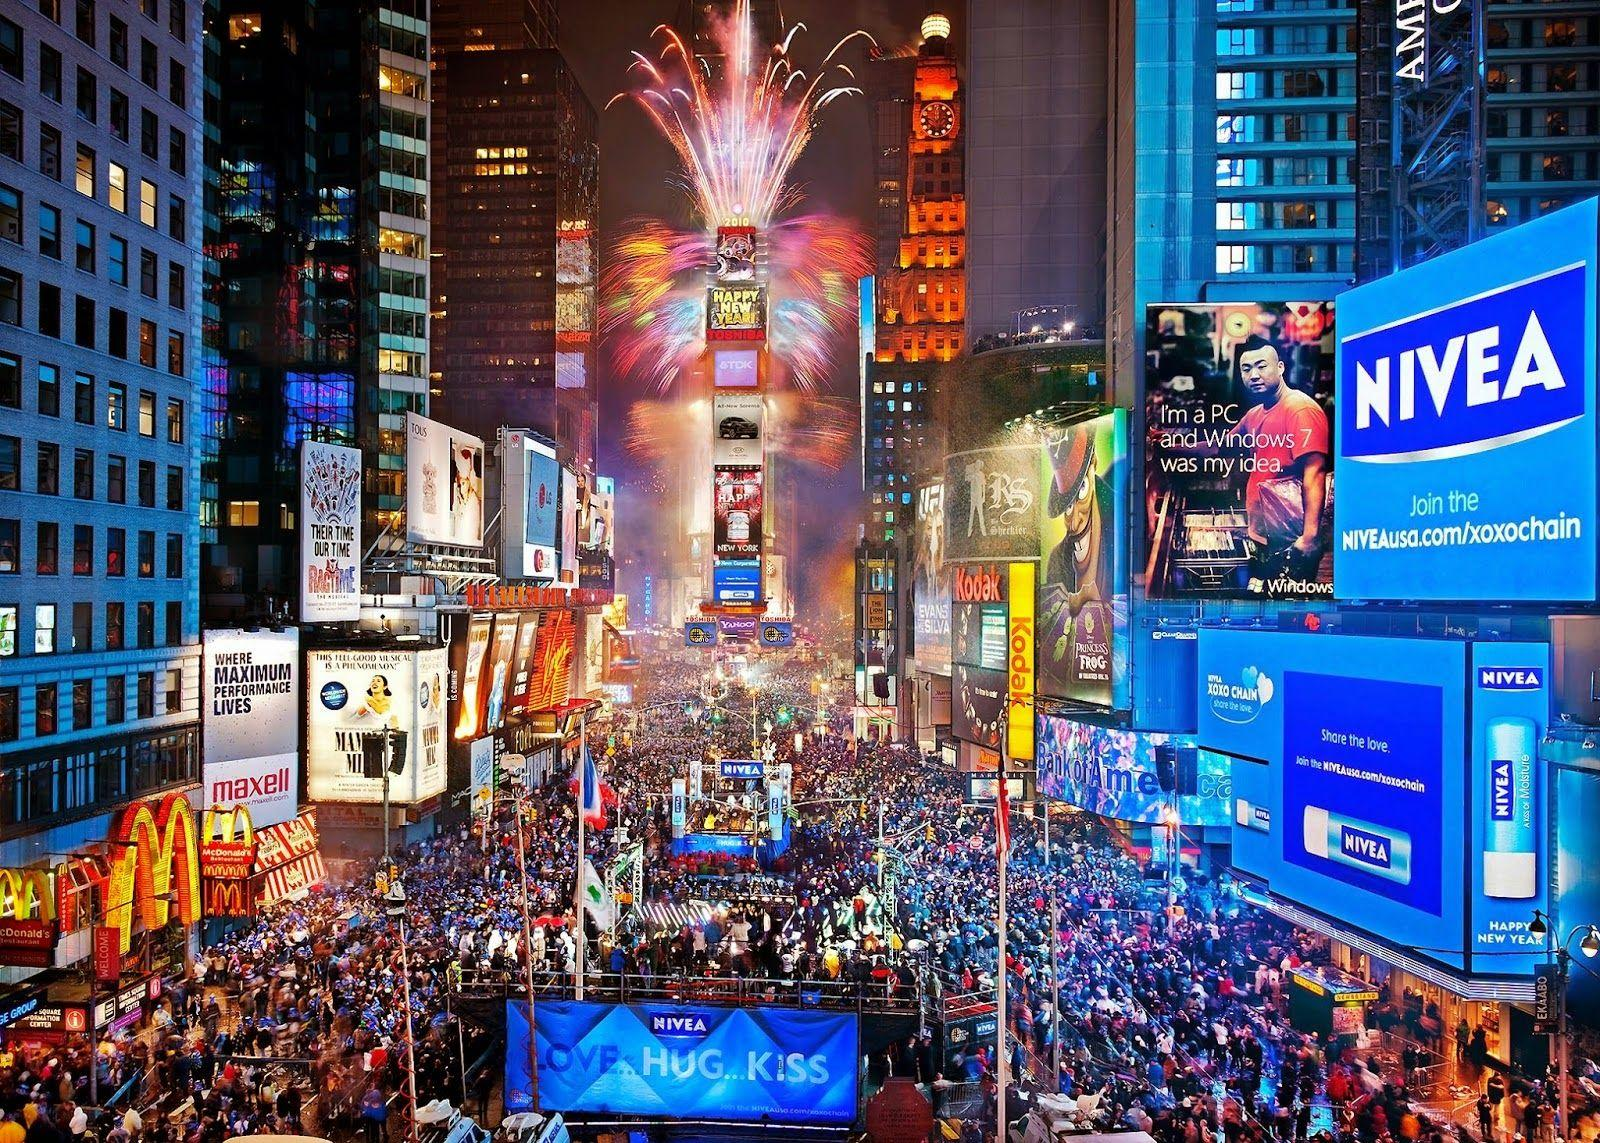 Times Square New Years Ev HD Wallpaper, Backgrounds Image